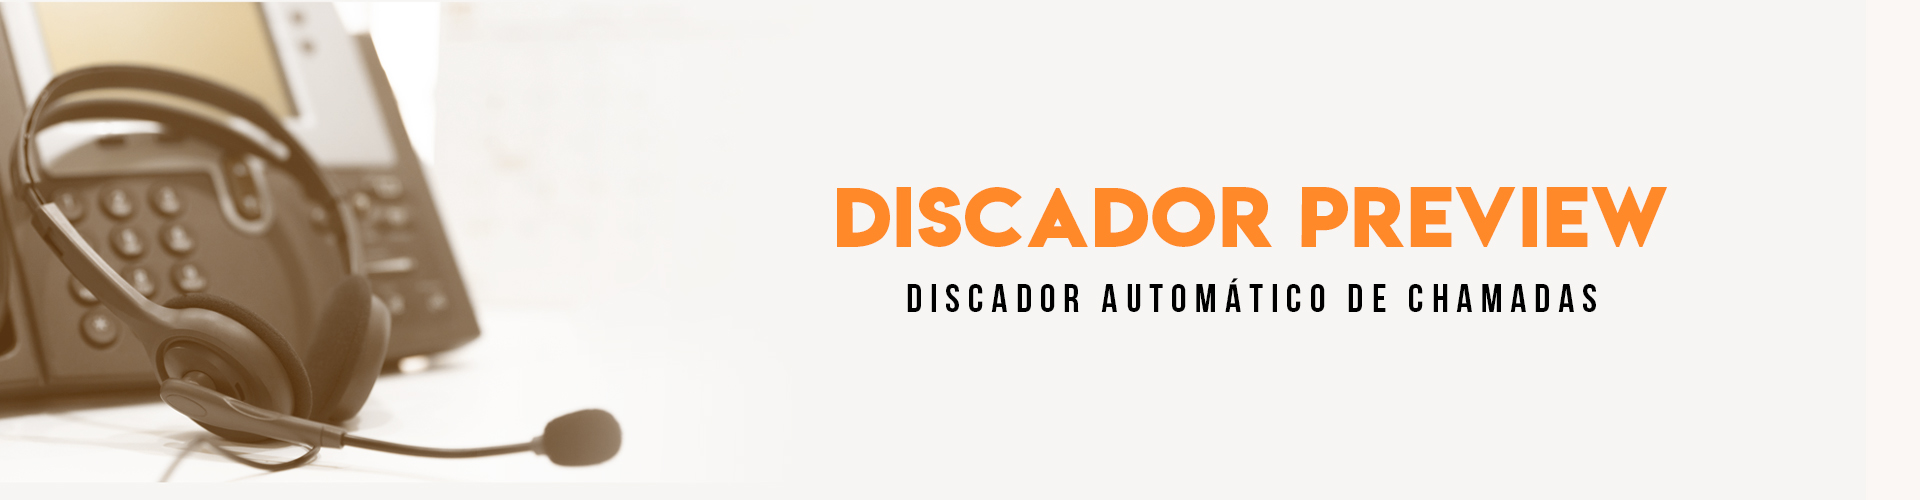 Call Center - Discador Preview